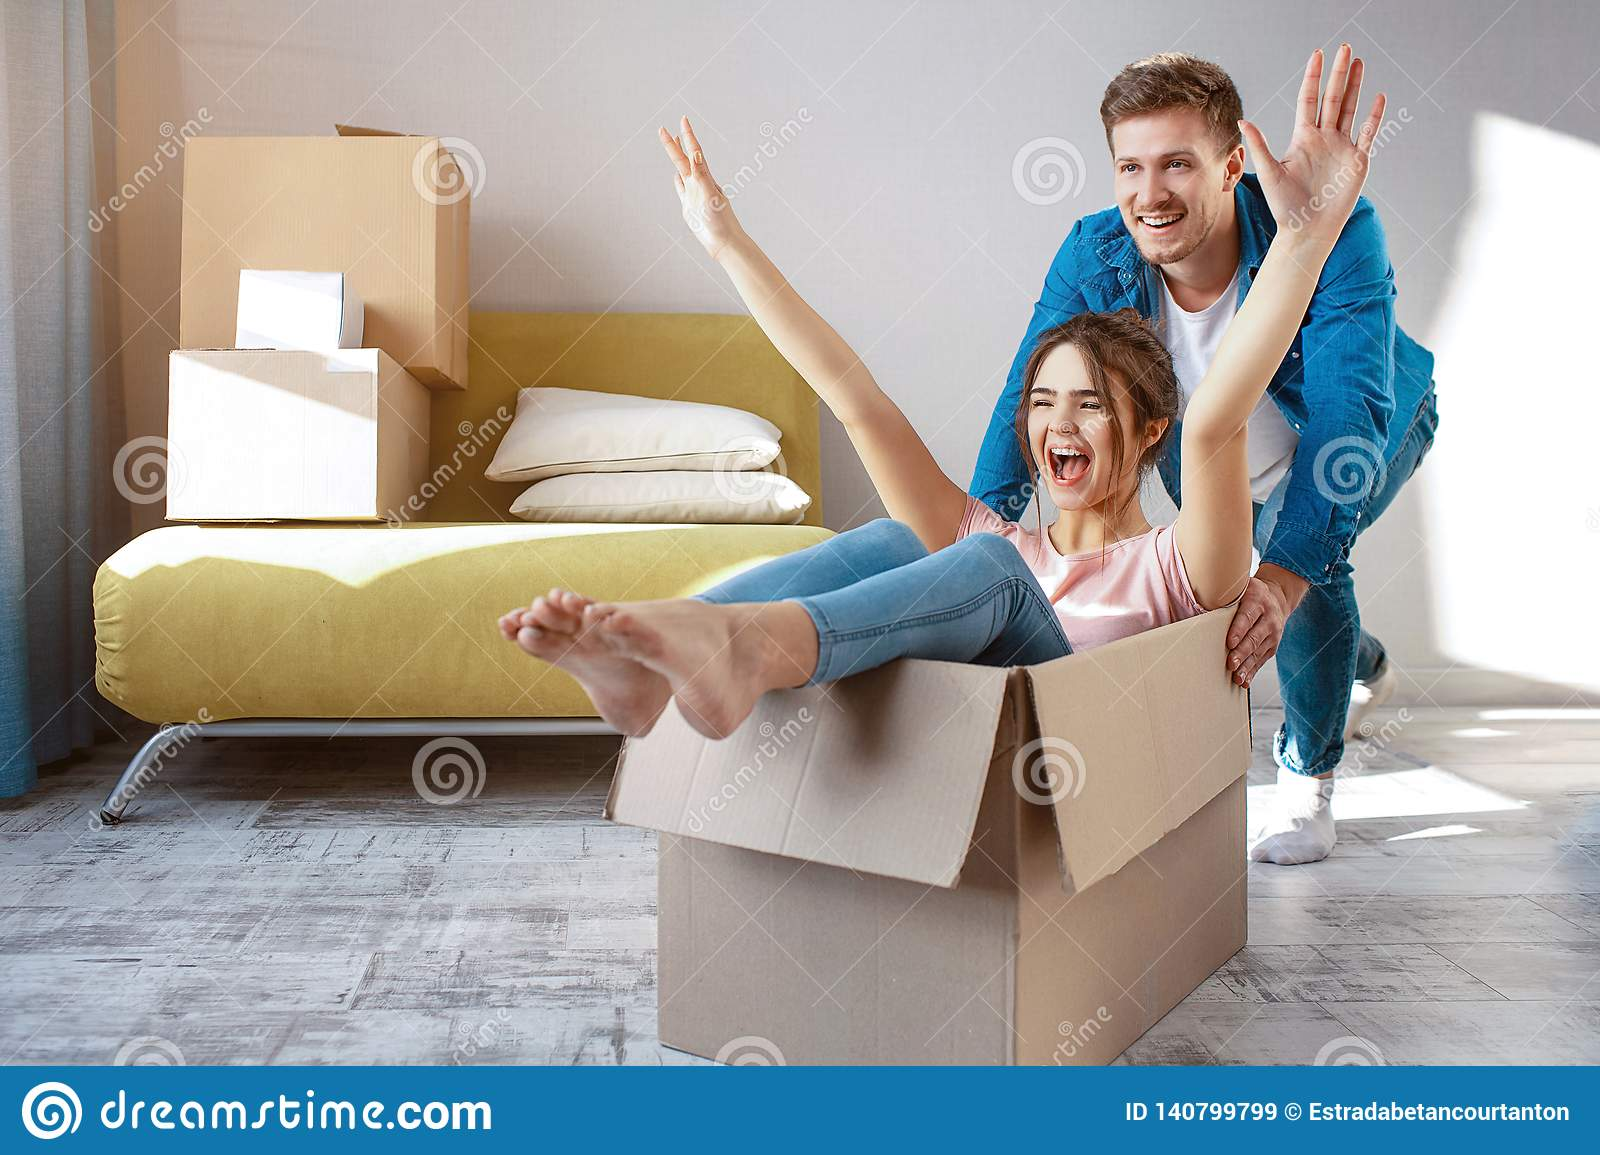 Young family couple bought or rented their first small apartment. Cheerful happy people having fun. She sit in box and